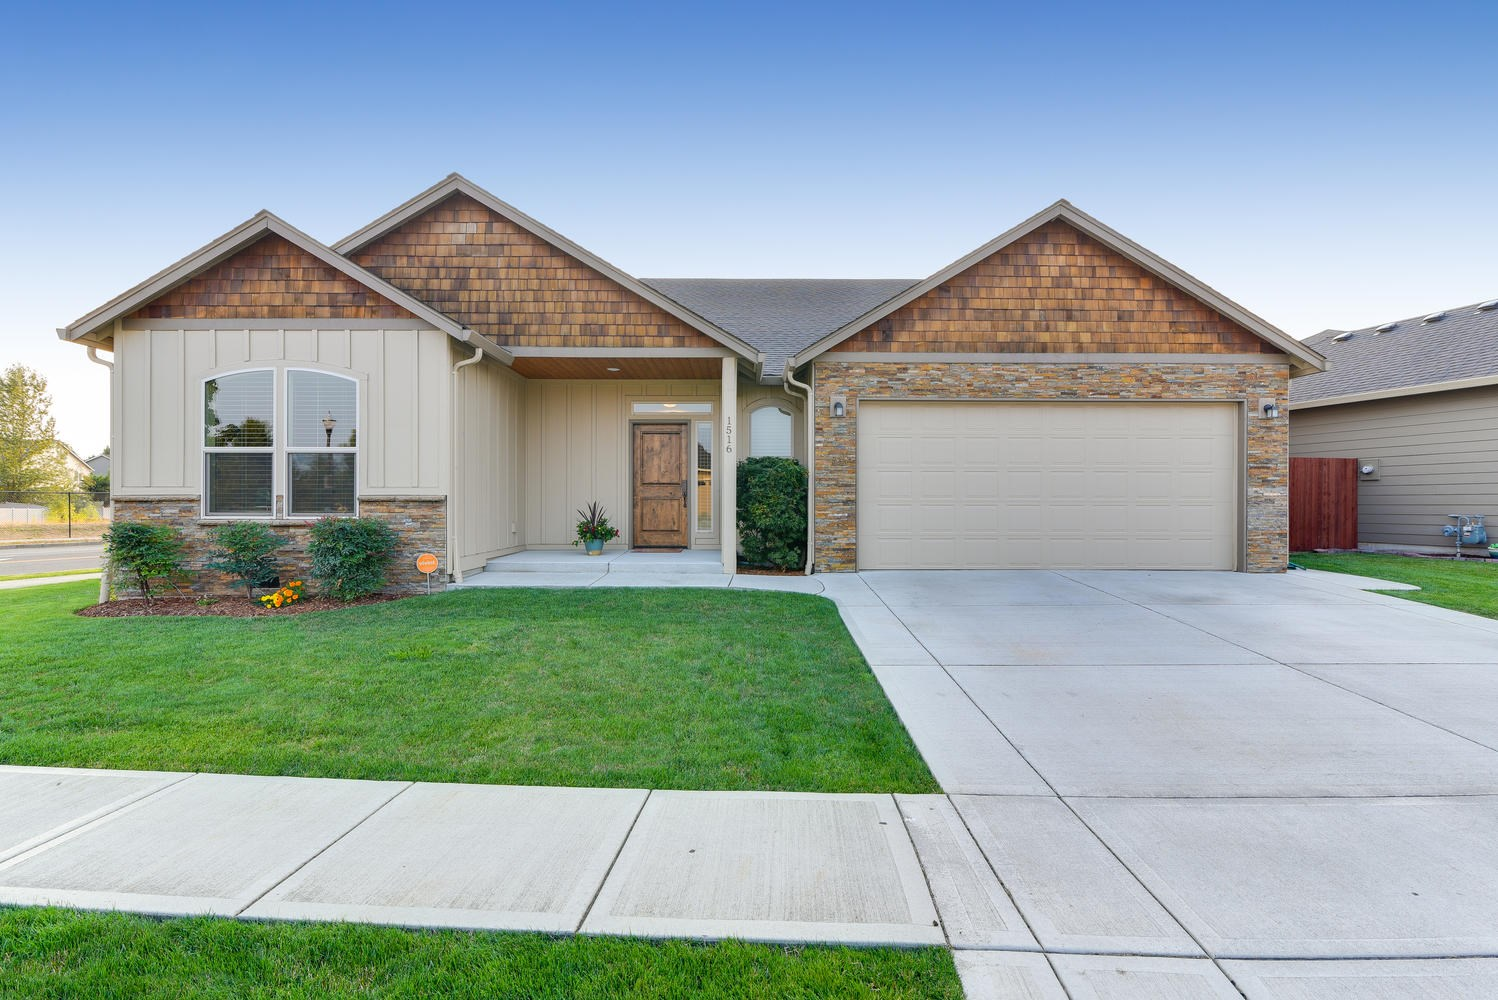 Immaculate 4-bedrm, 3-bath open-concept home on corner lot